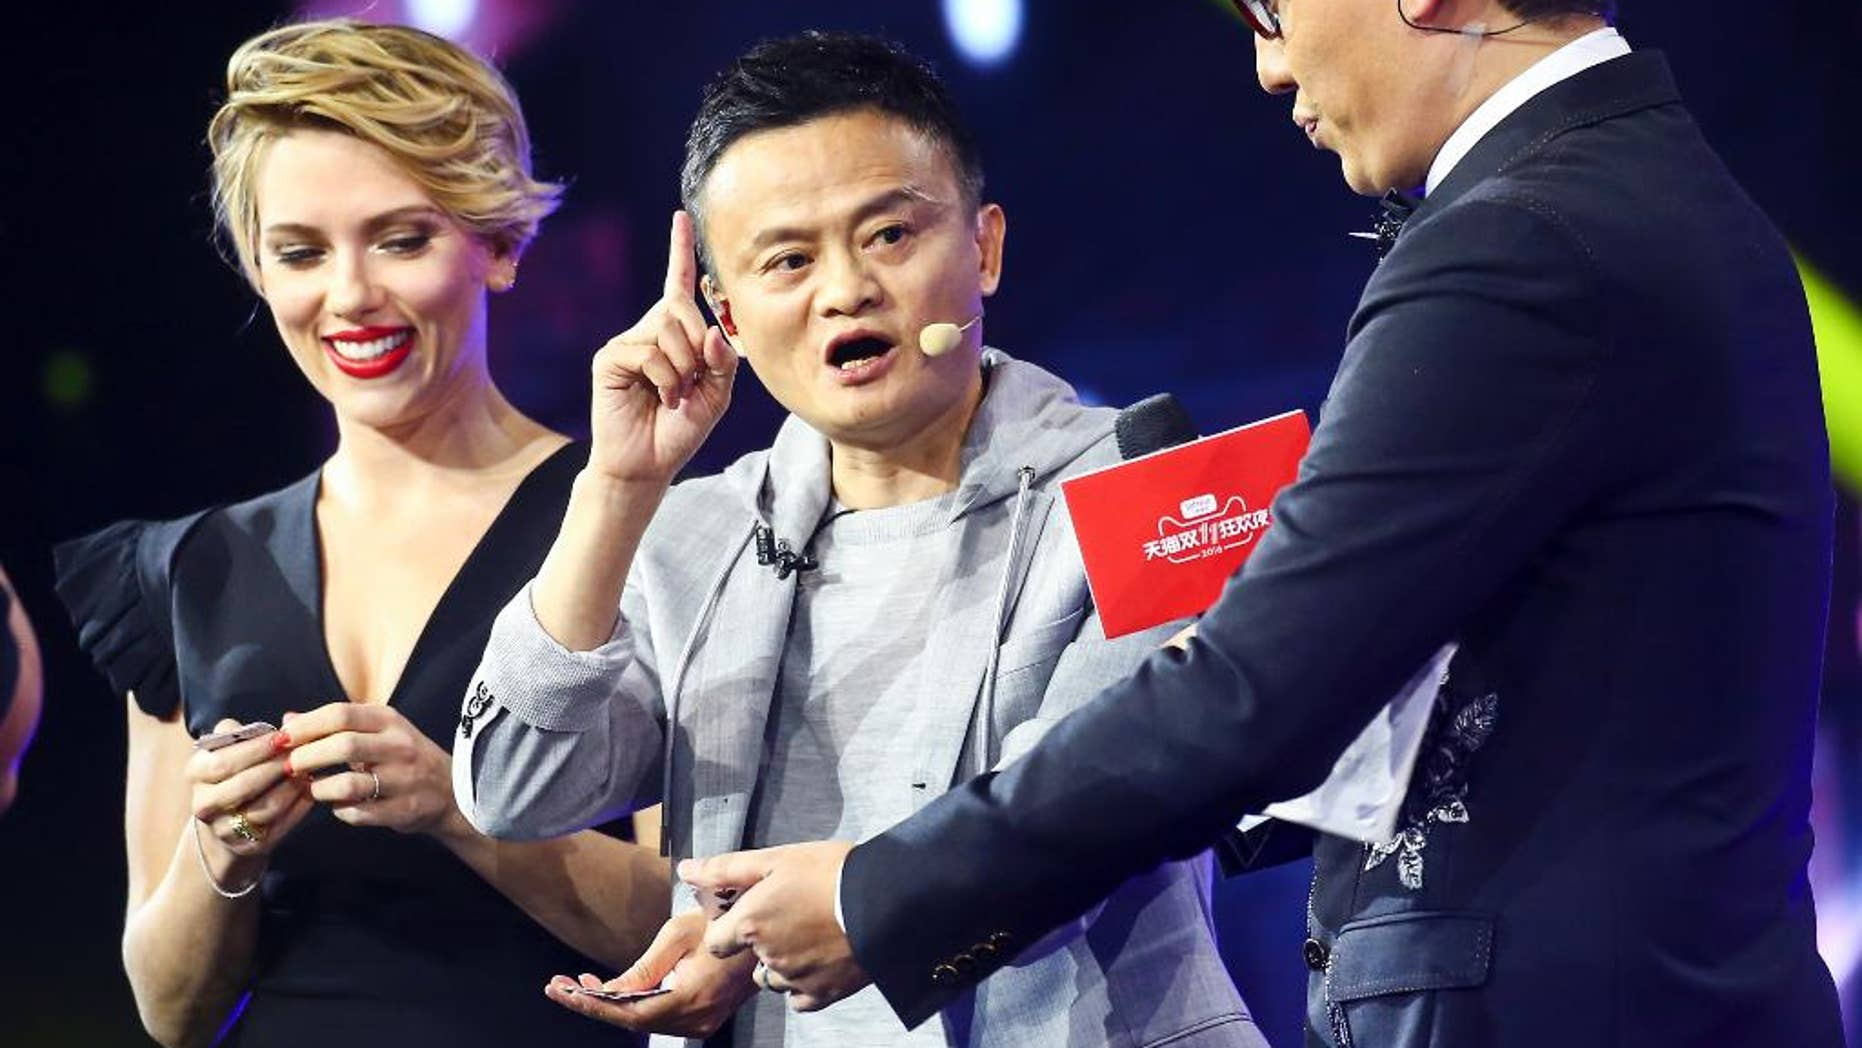 In this Thursday, Nov. 10, 2016 photo, Hollywood actress Scarlett Johansson, left, and Alibaba Group Chairman Jack Ma, center, attend an evening gala on the eve of the Singles Day online shopping festival in Shenzhen in southern China's Guangdong province.